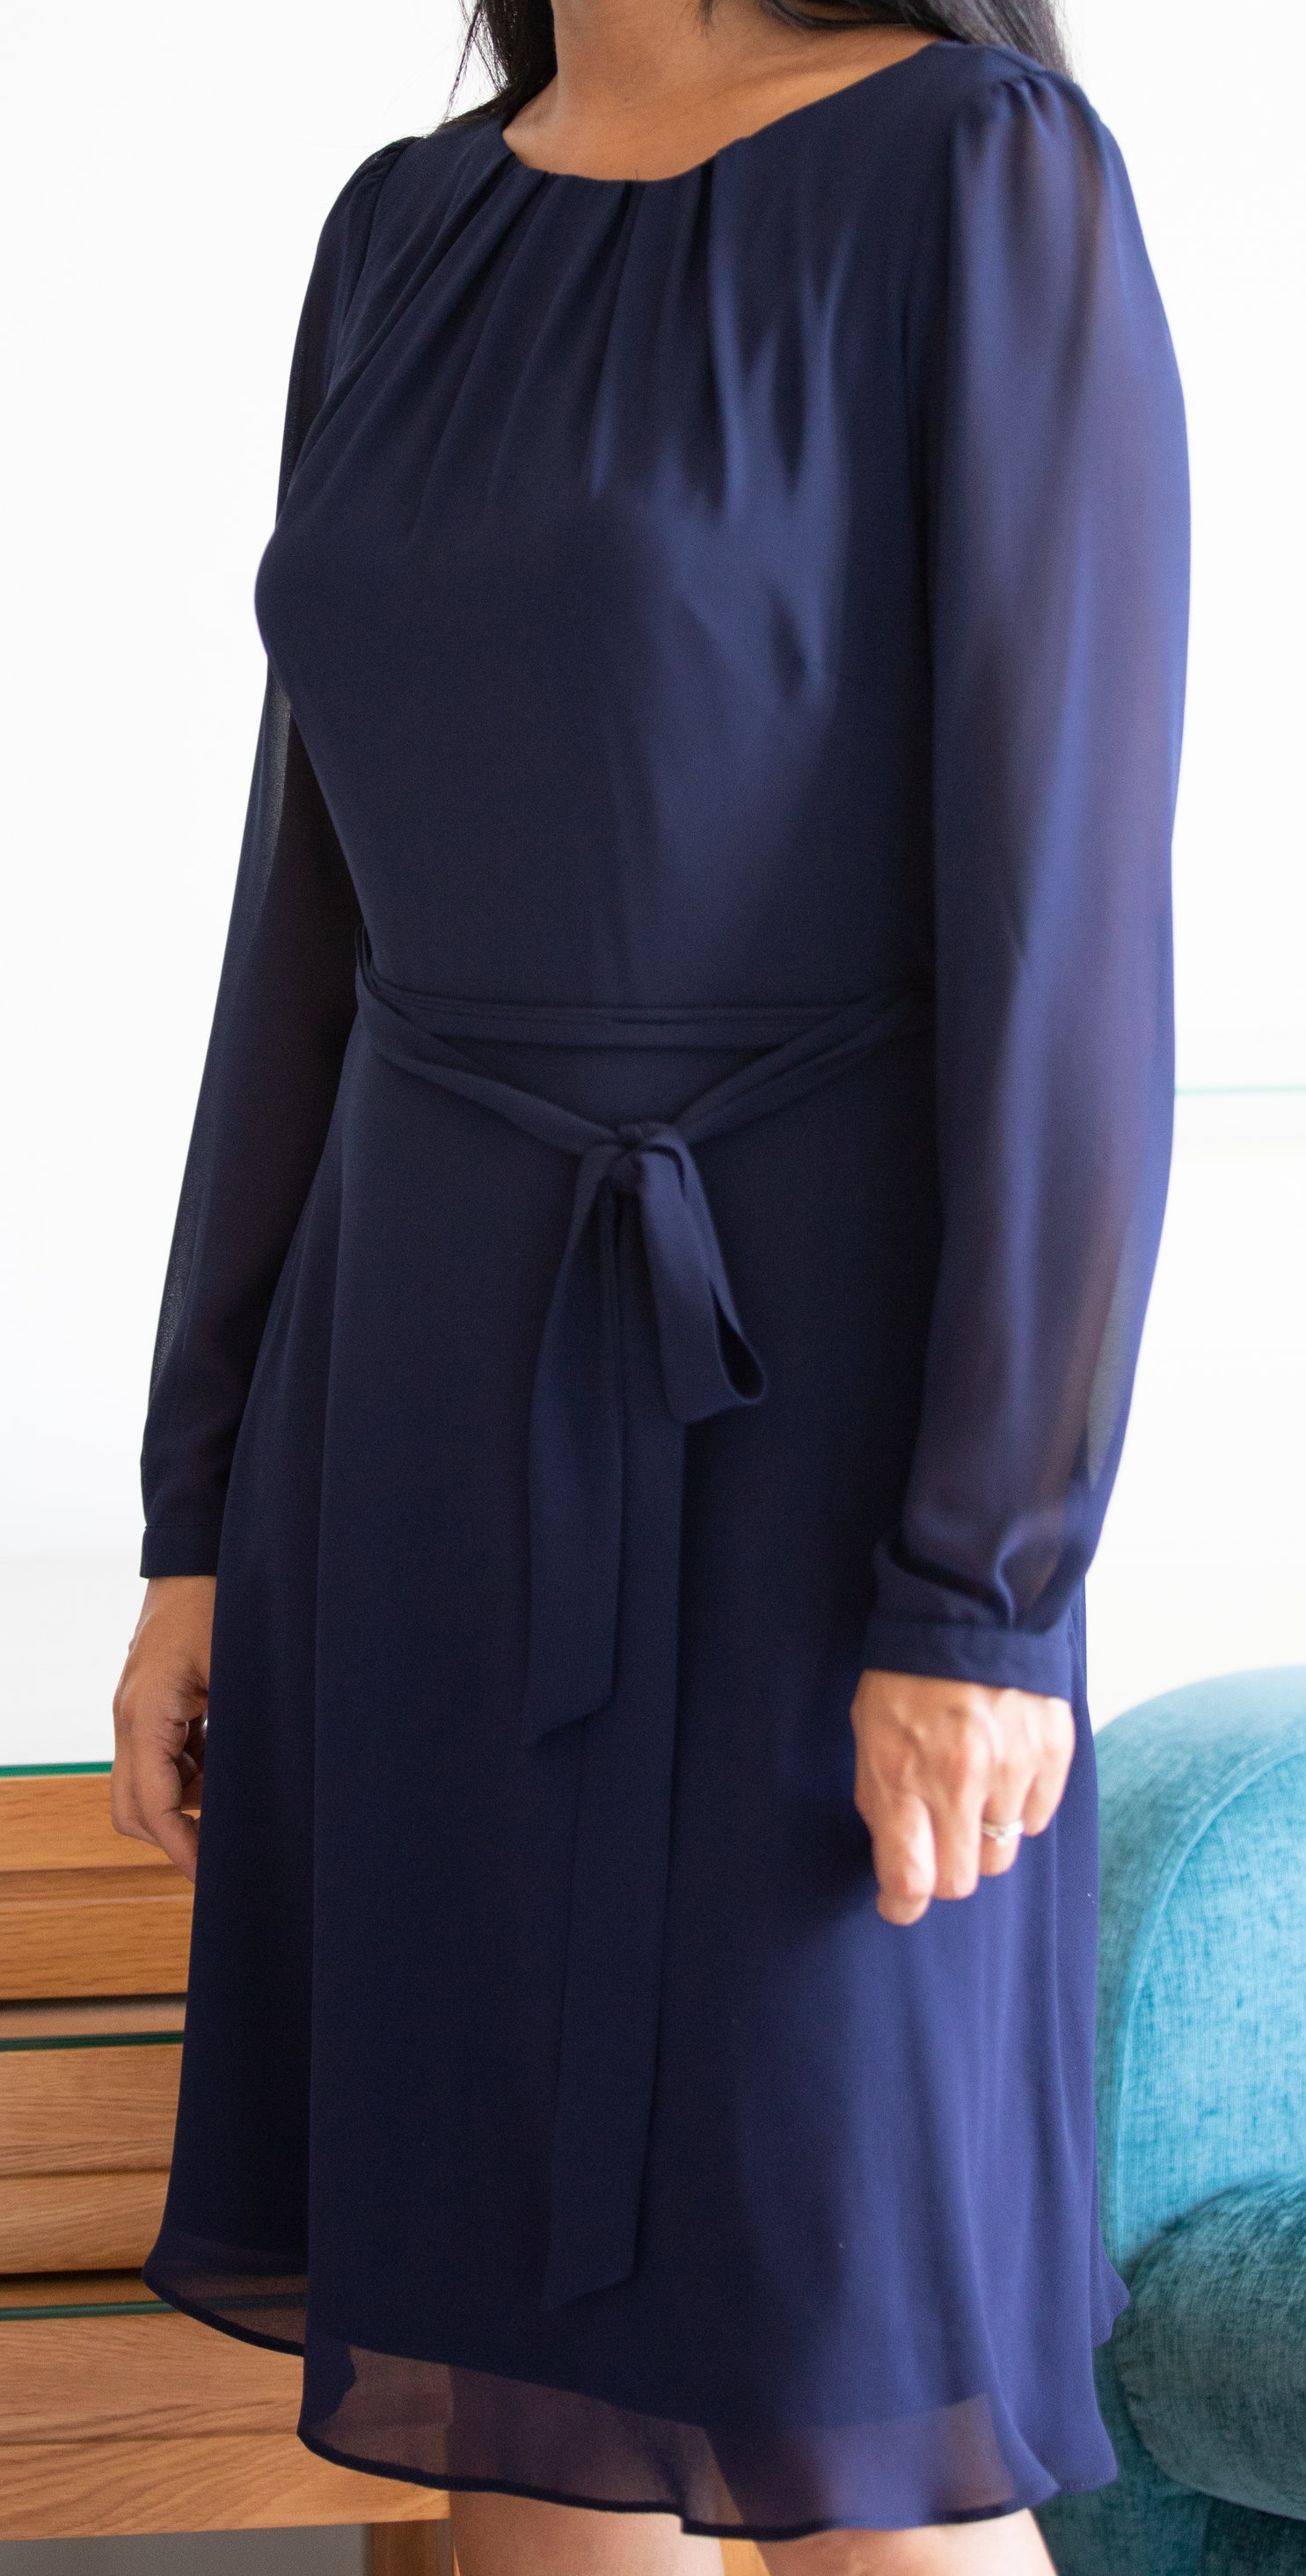 Dressy vegan clothes from Dorothy Perkins